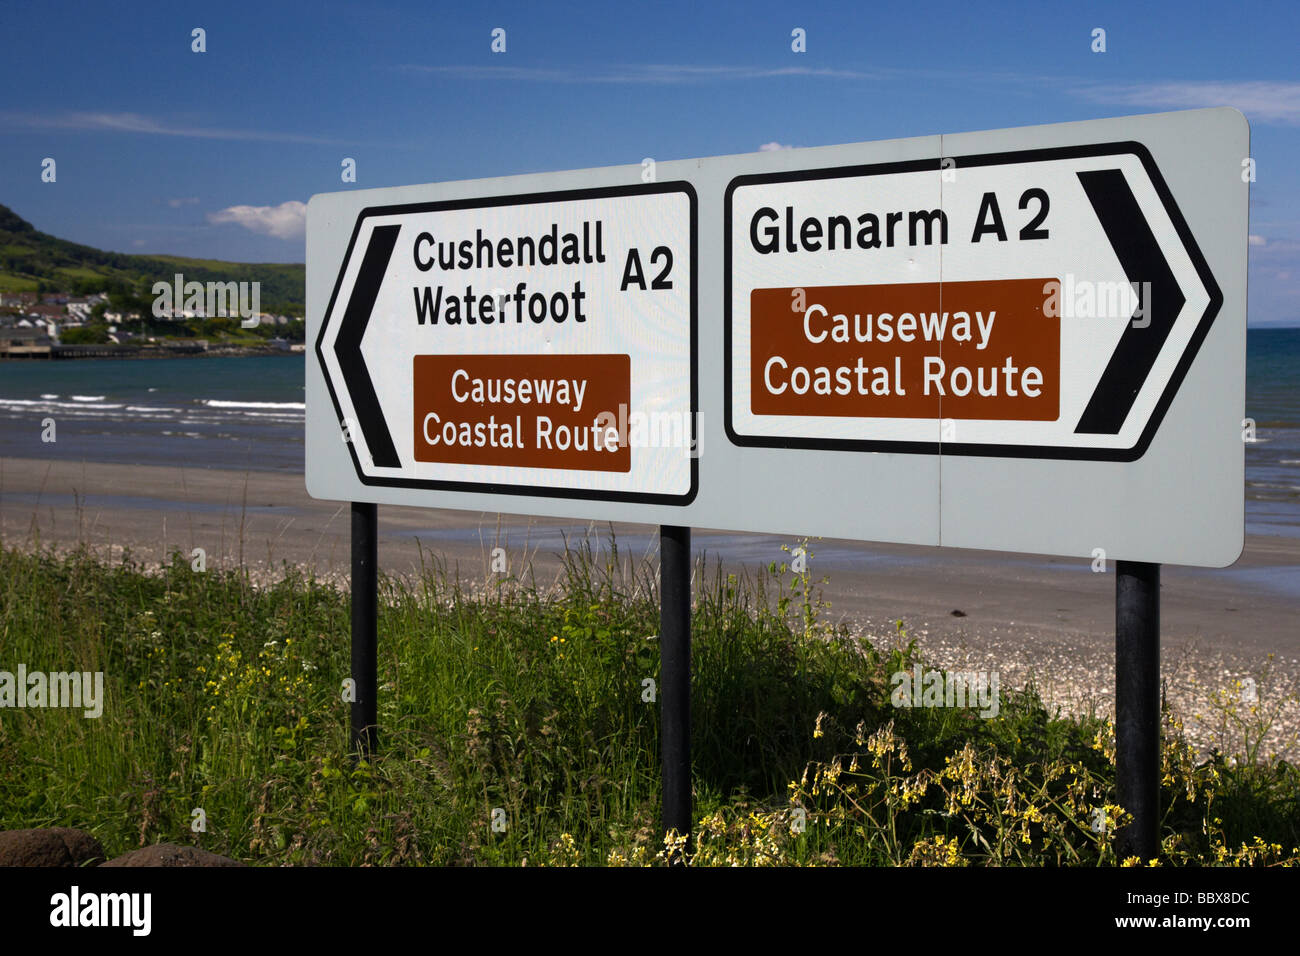 signposts for the causeway coastal route at carnlough between cushendall and glenarm county antrim coast road A2 - Stock Image